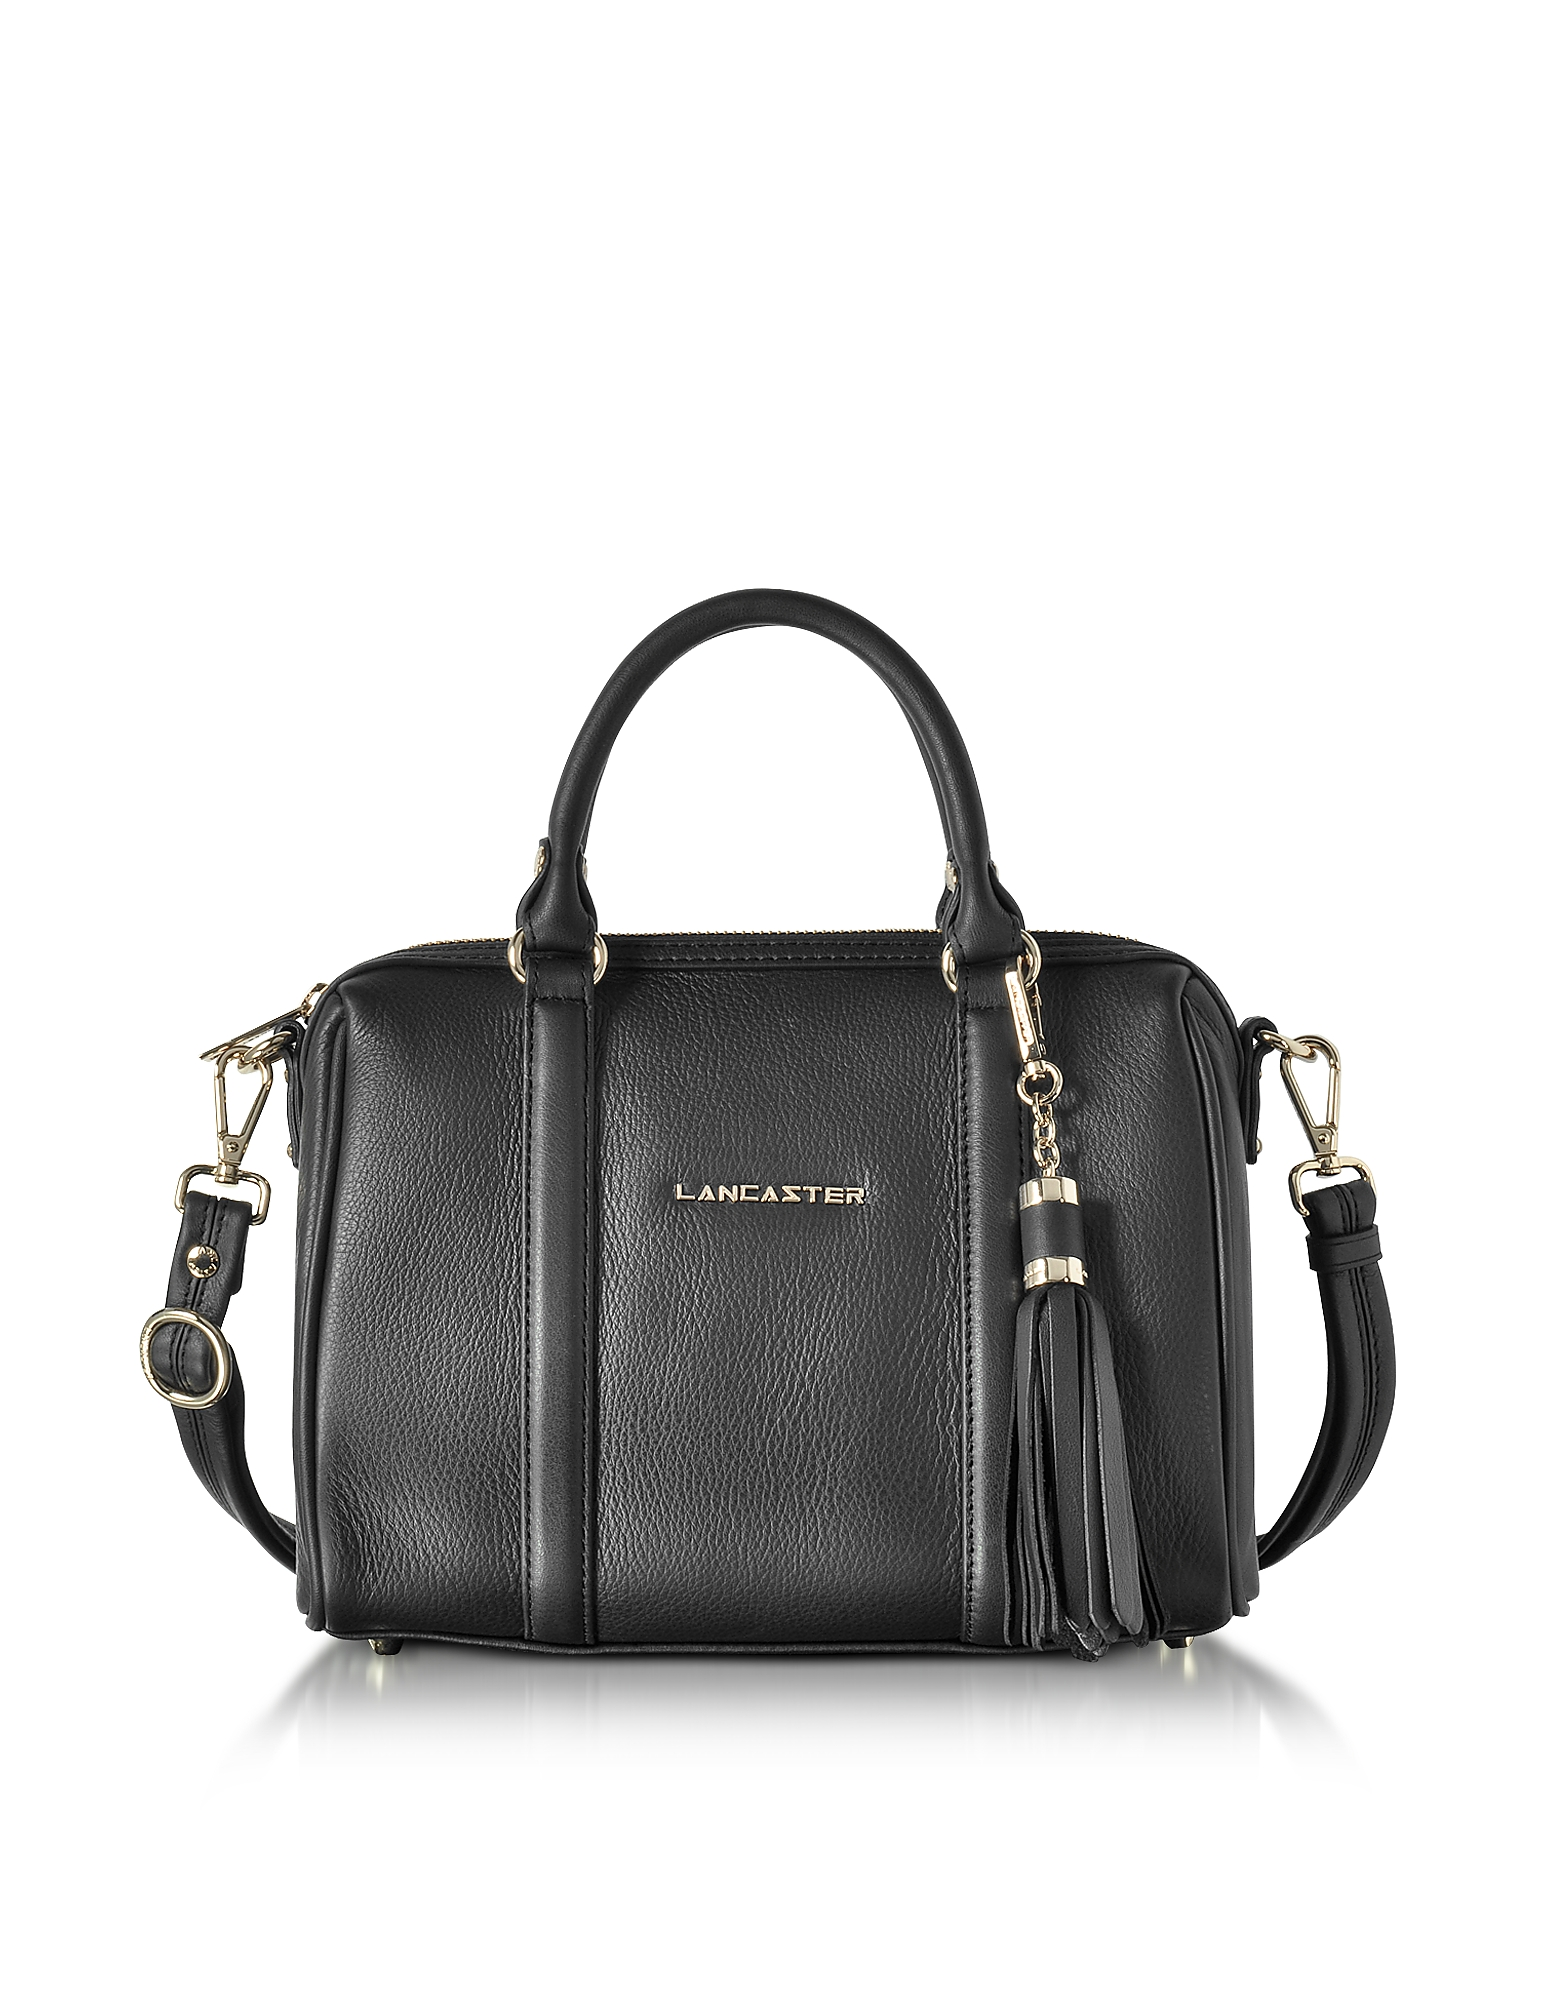 Lancaster Paris Handbags, Mademoiselle Ana Grained Leather Small Duffle Bag